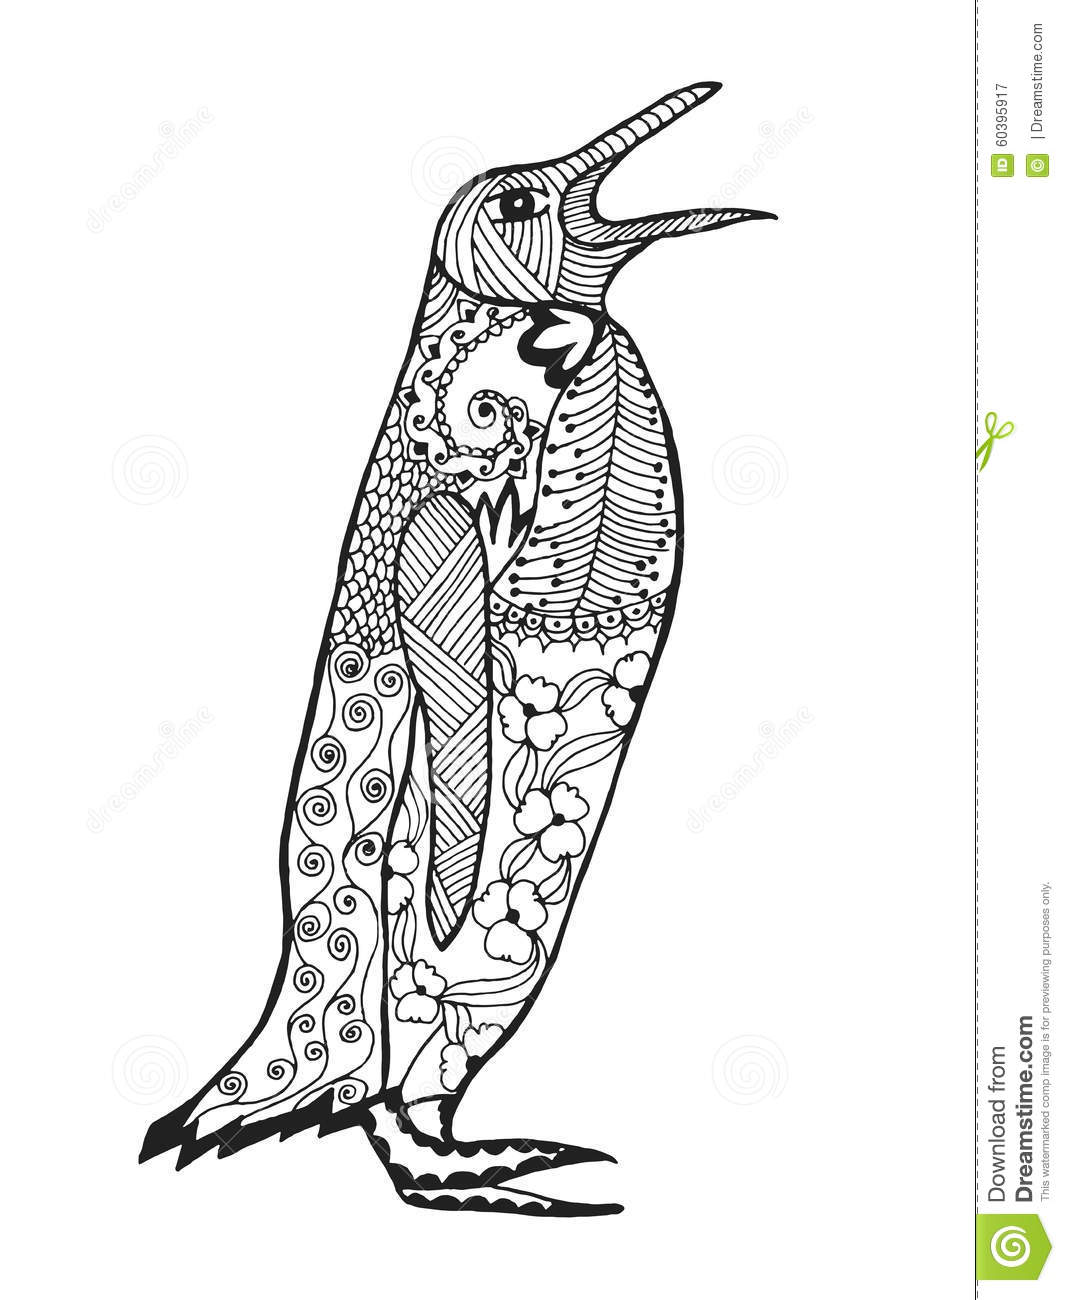 Zentangle Stylized Penguin. Sketch For Tattoo Or T-shirt